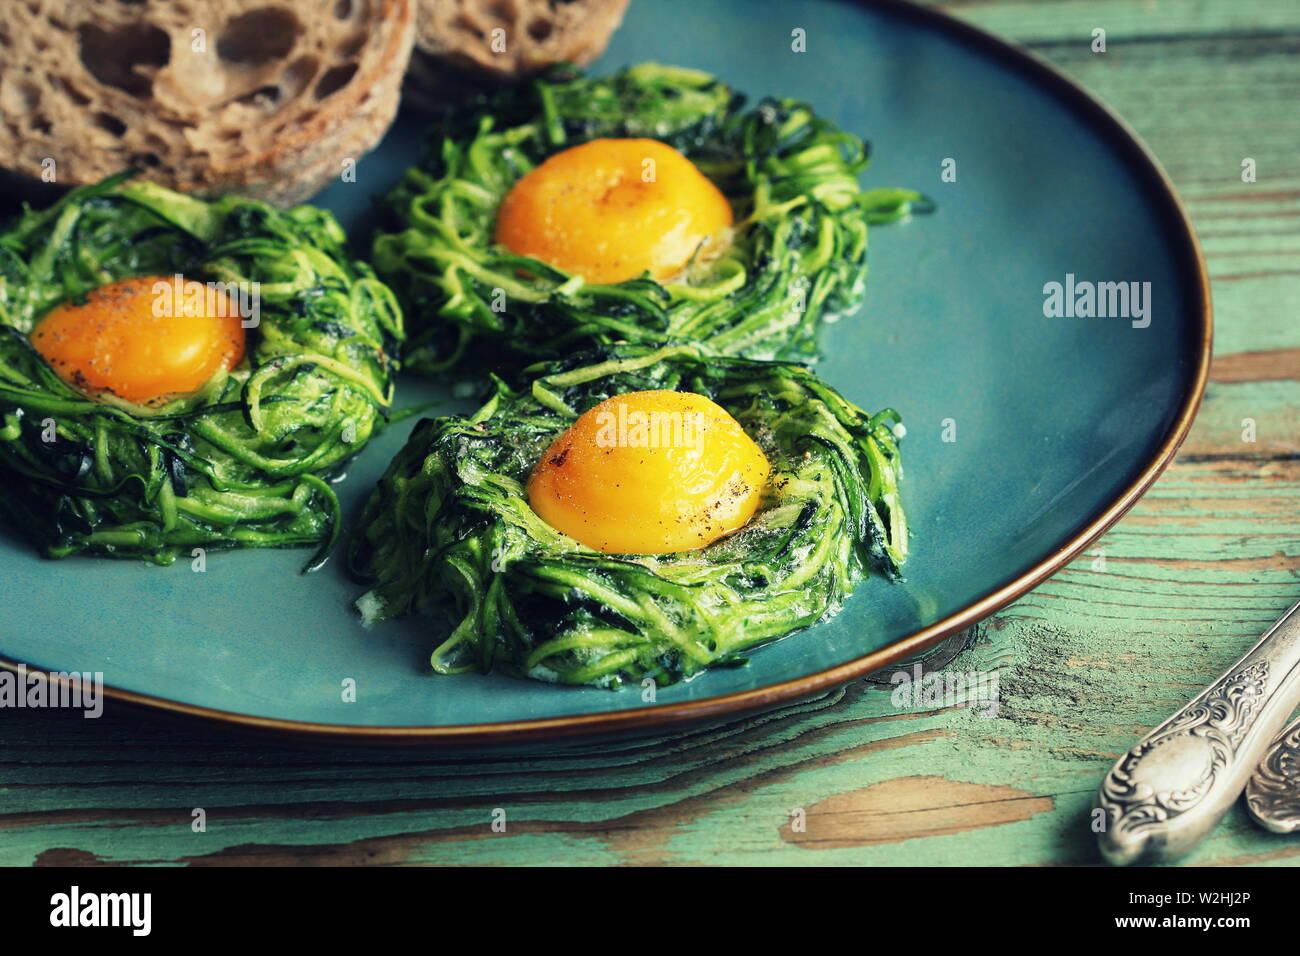 Fried egg in zucchini noodle nest, healthy breakfast, top view - Stock Image